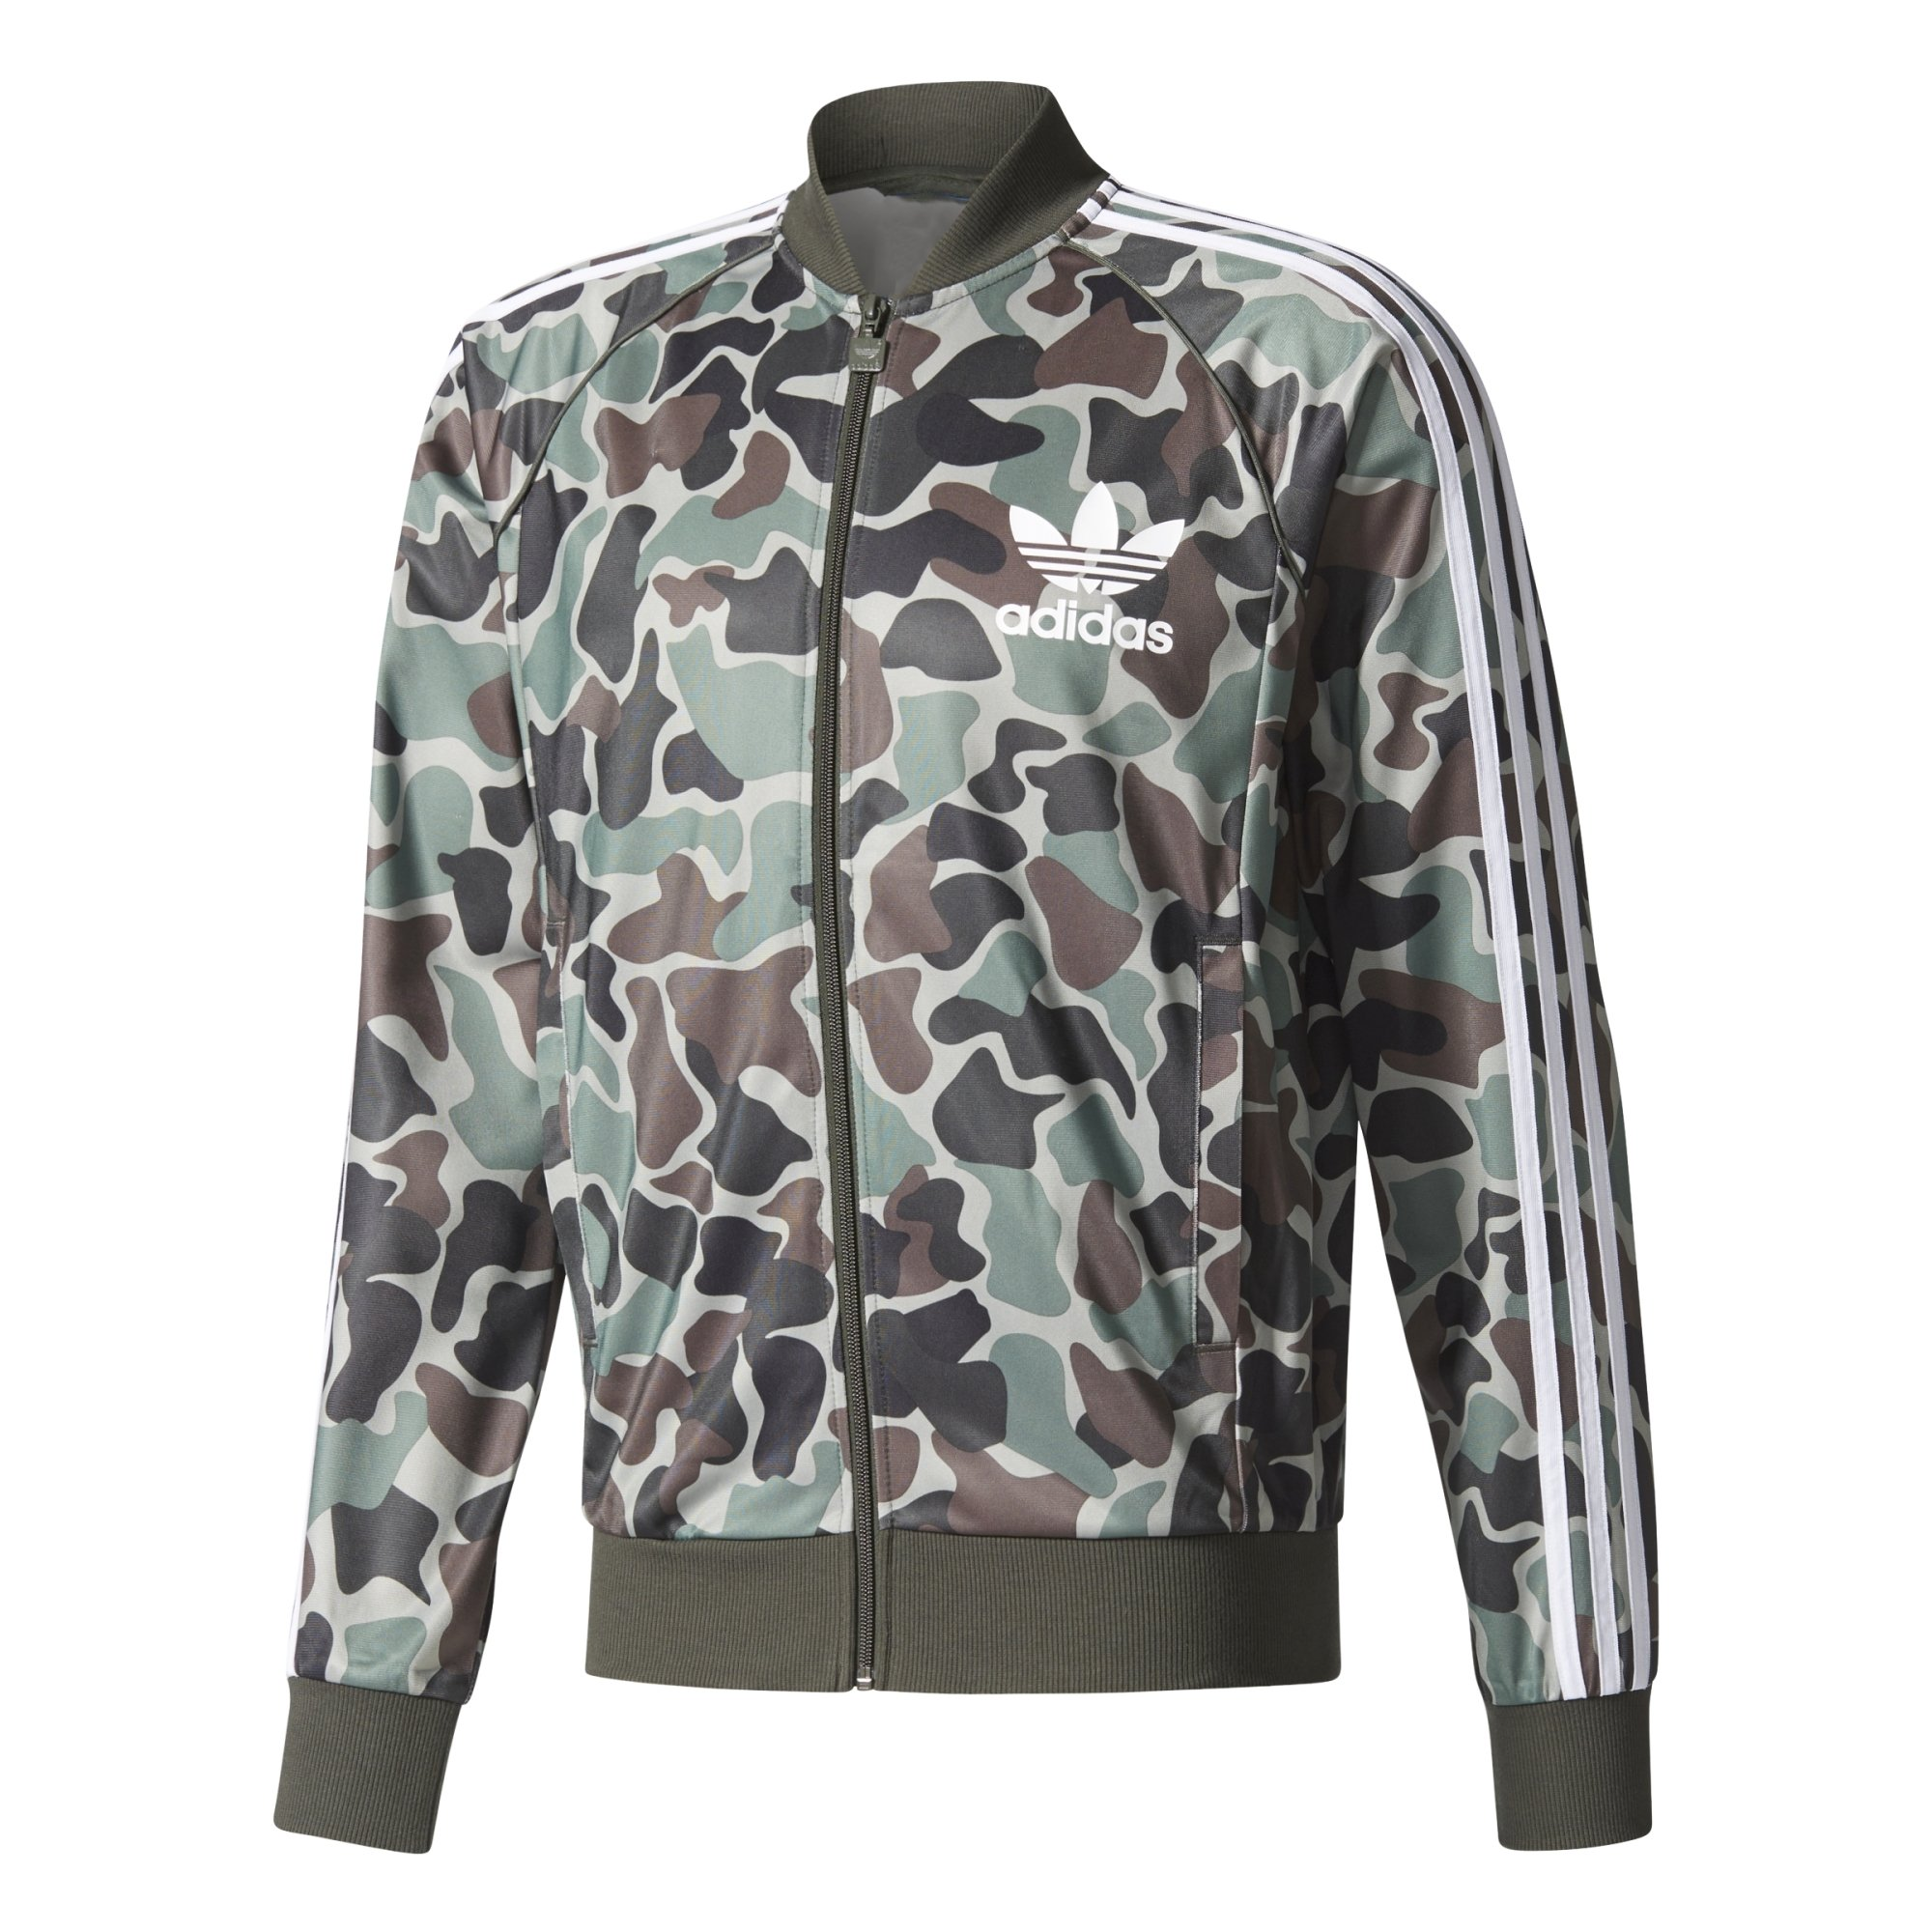 Adidas Originals Superstar Track Top Camo